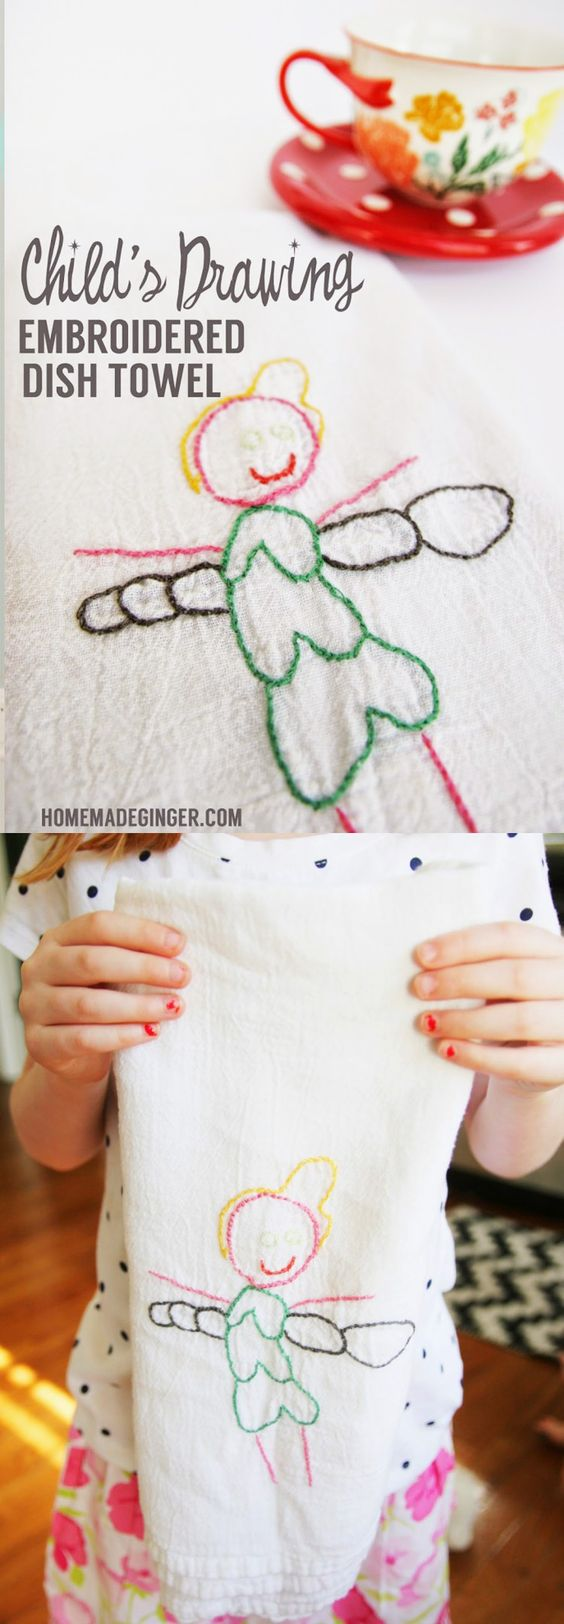 Child s drawing embroidery dish towel towels gifts